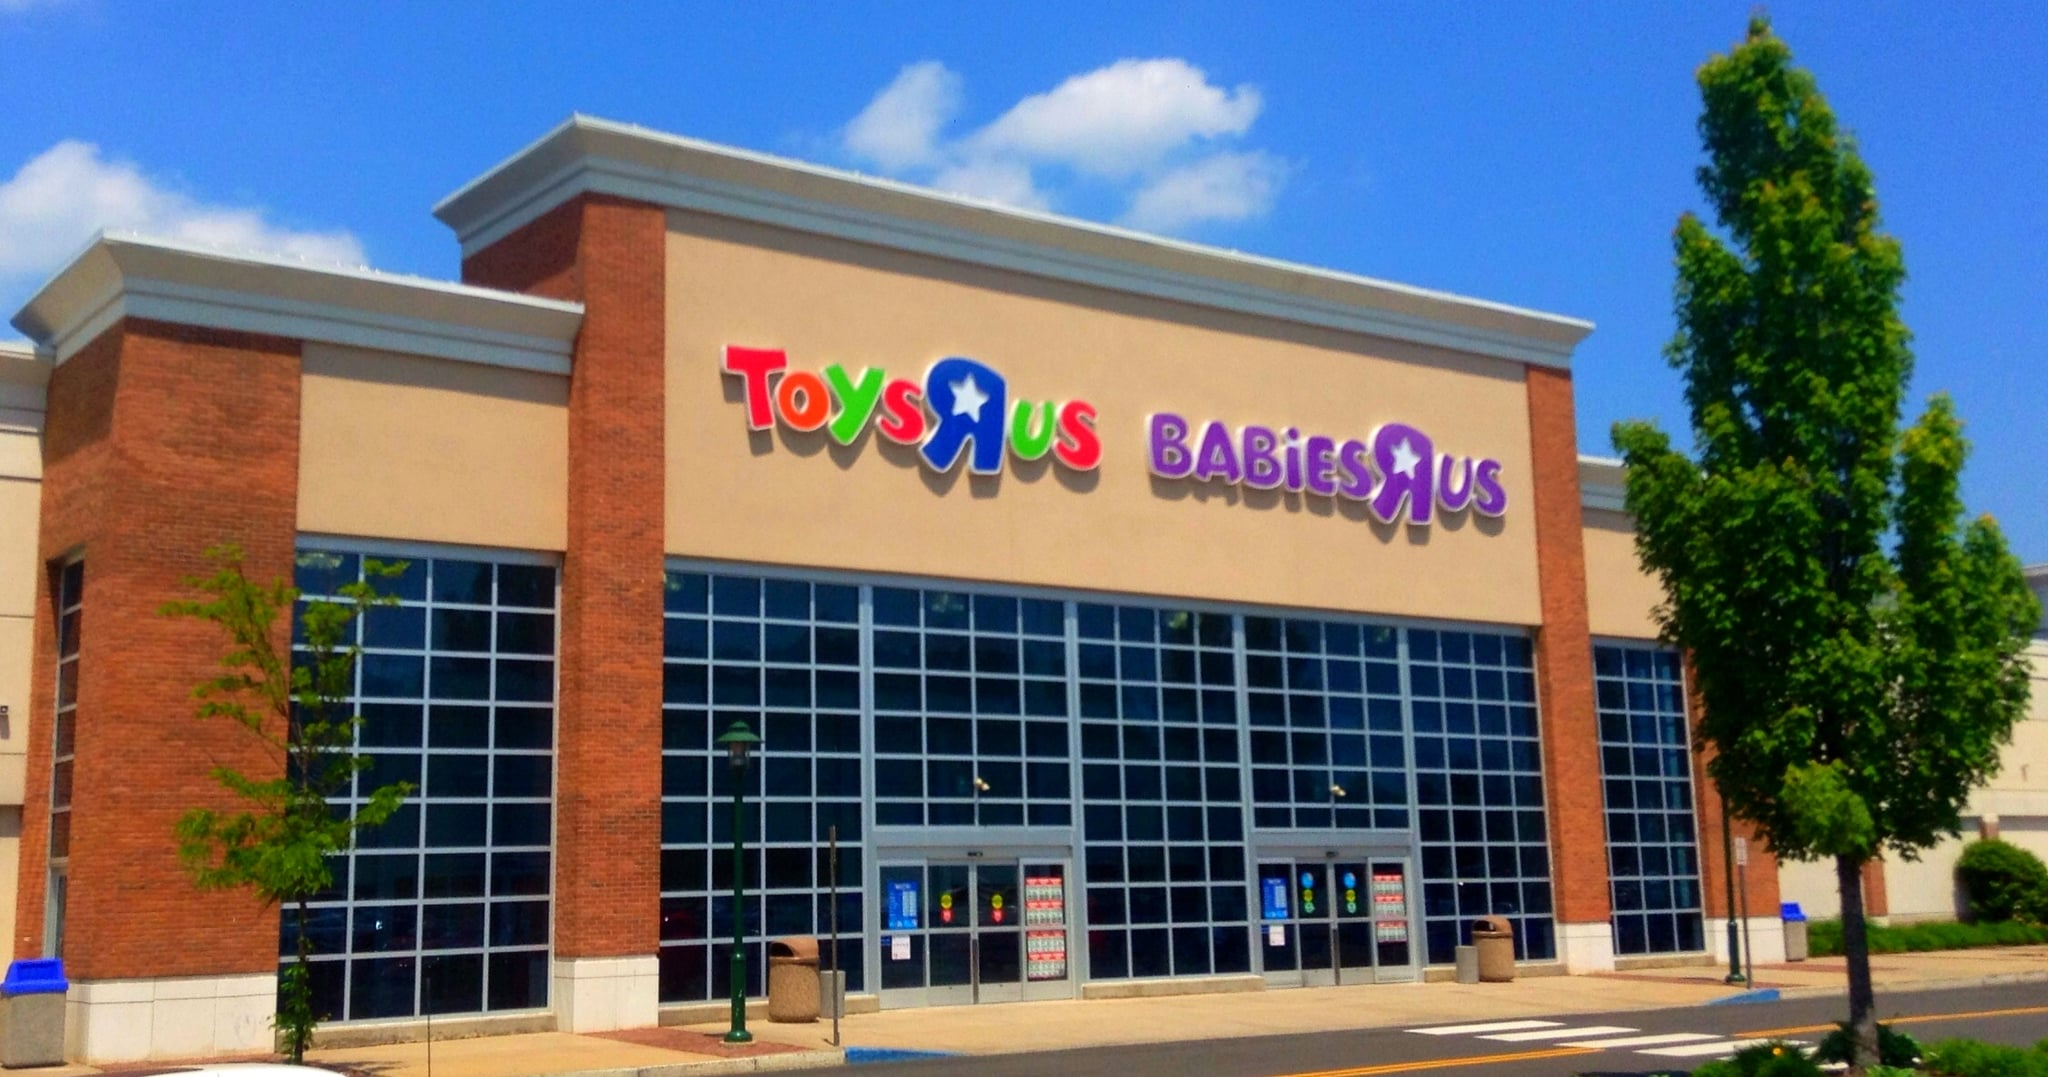 Toys r us stores closing in 2018 popsugar moms update toys r us has announced it will be closing an additional 200 stores across the us and will lay off a number of its corporate employees spiritdancerdesigns Choice Image